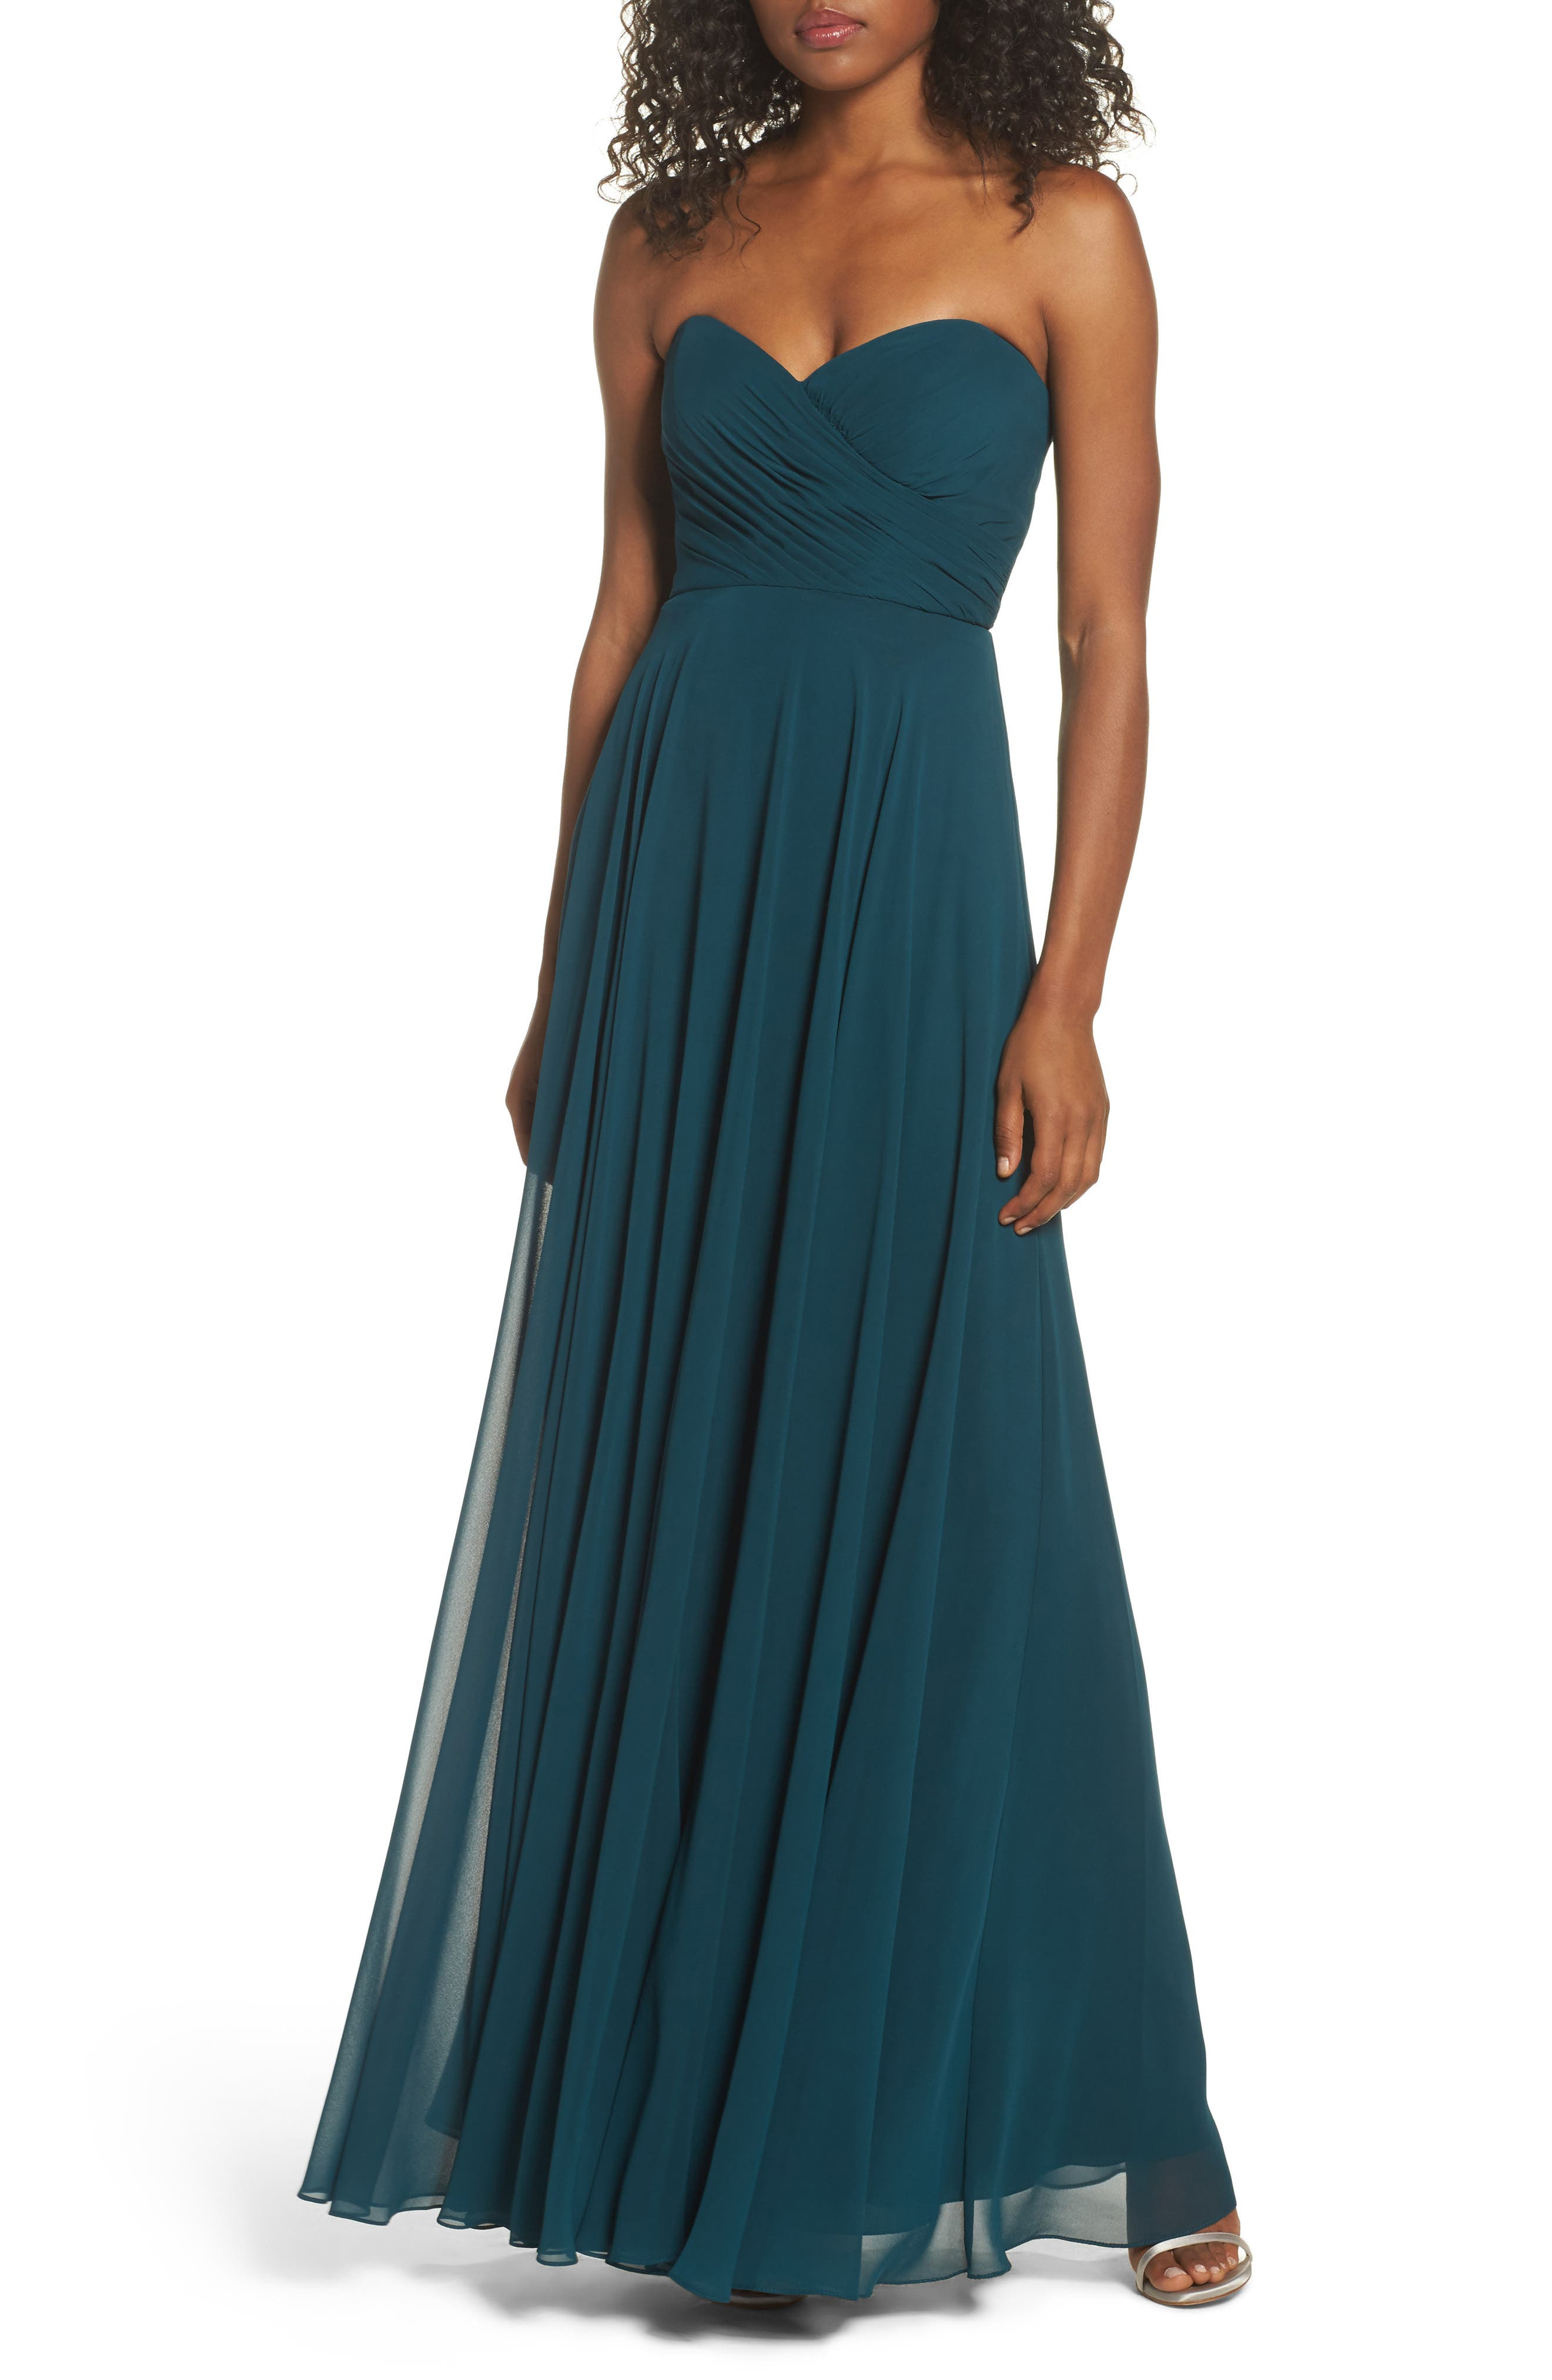 JENNY YOO Adeline Strapless Chiffon Gown, Main, color, 444